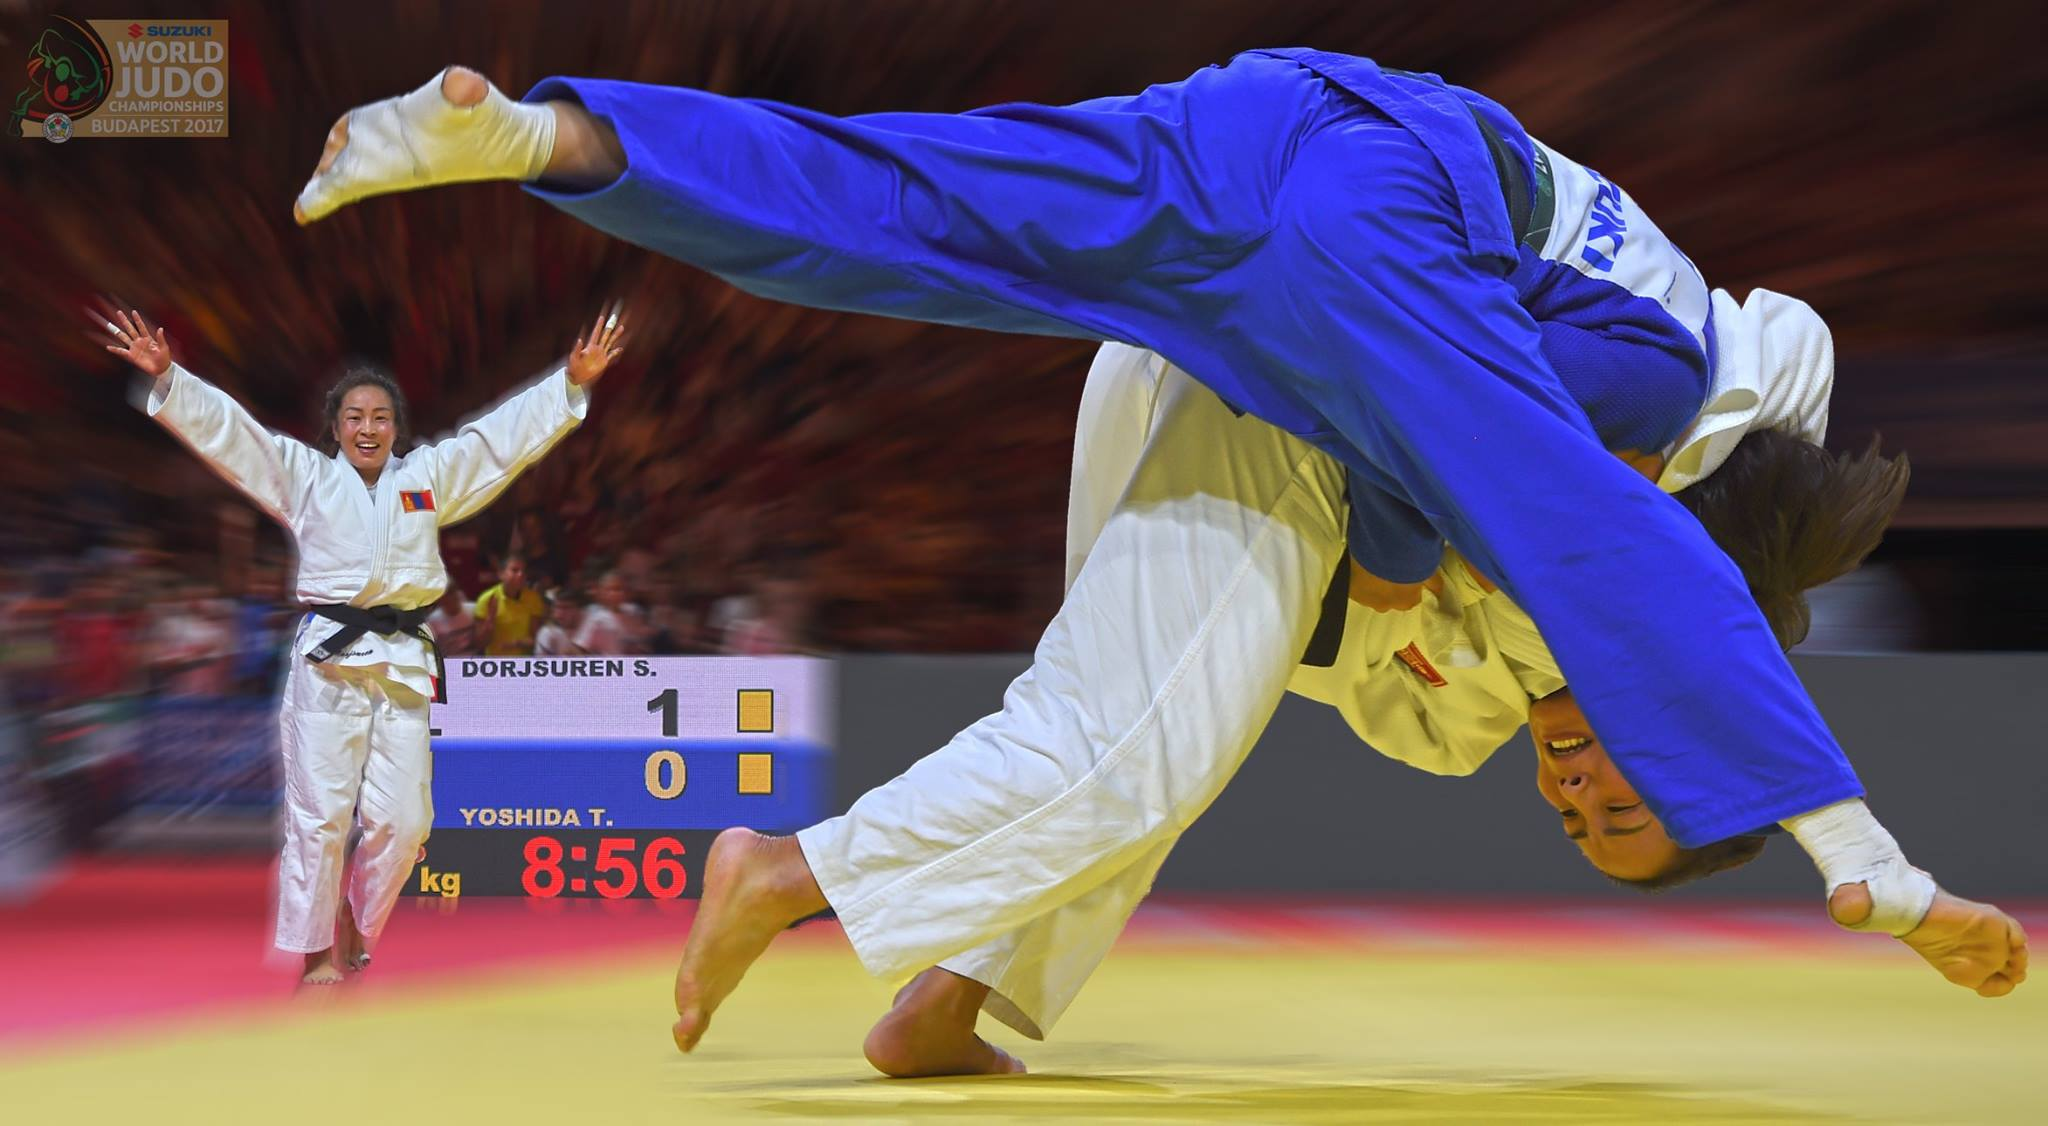 20170830_ijf_action_rw_sumiya_dorjsuren_mgl_compilation